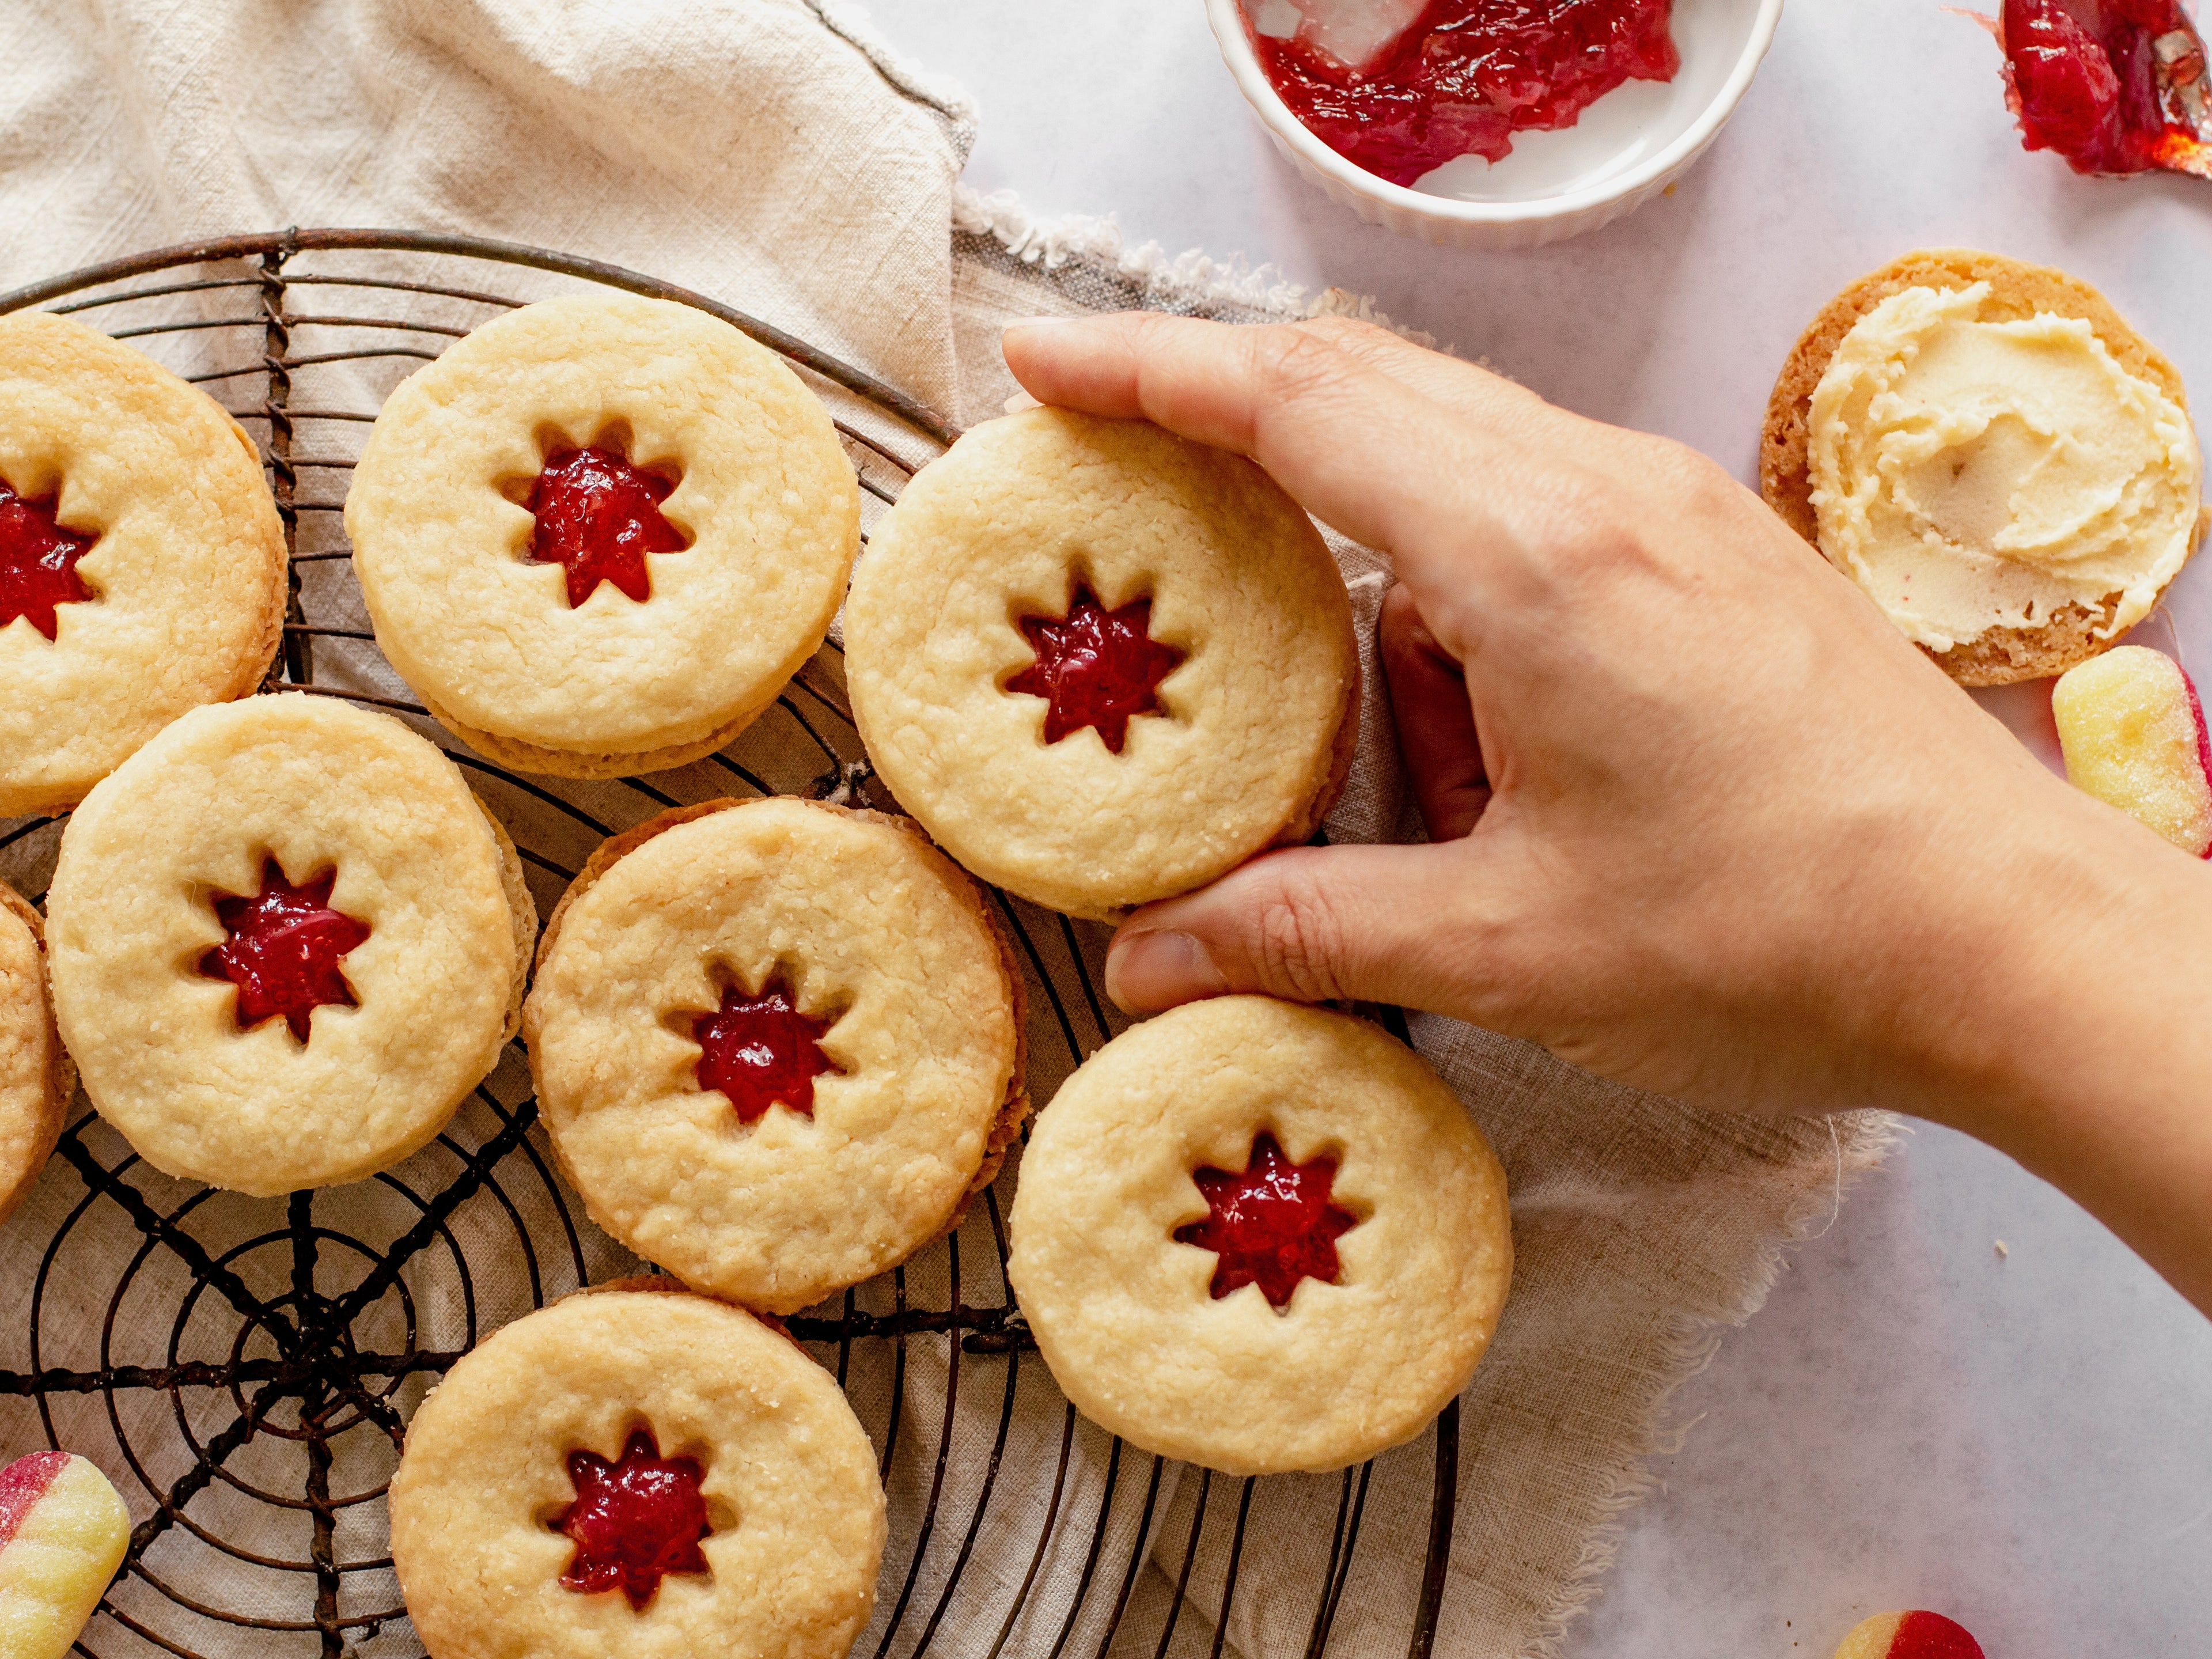 Jammy dodgers on wire cooling rack with hand